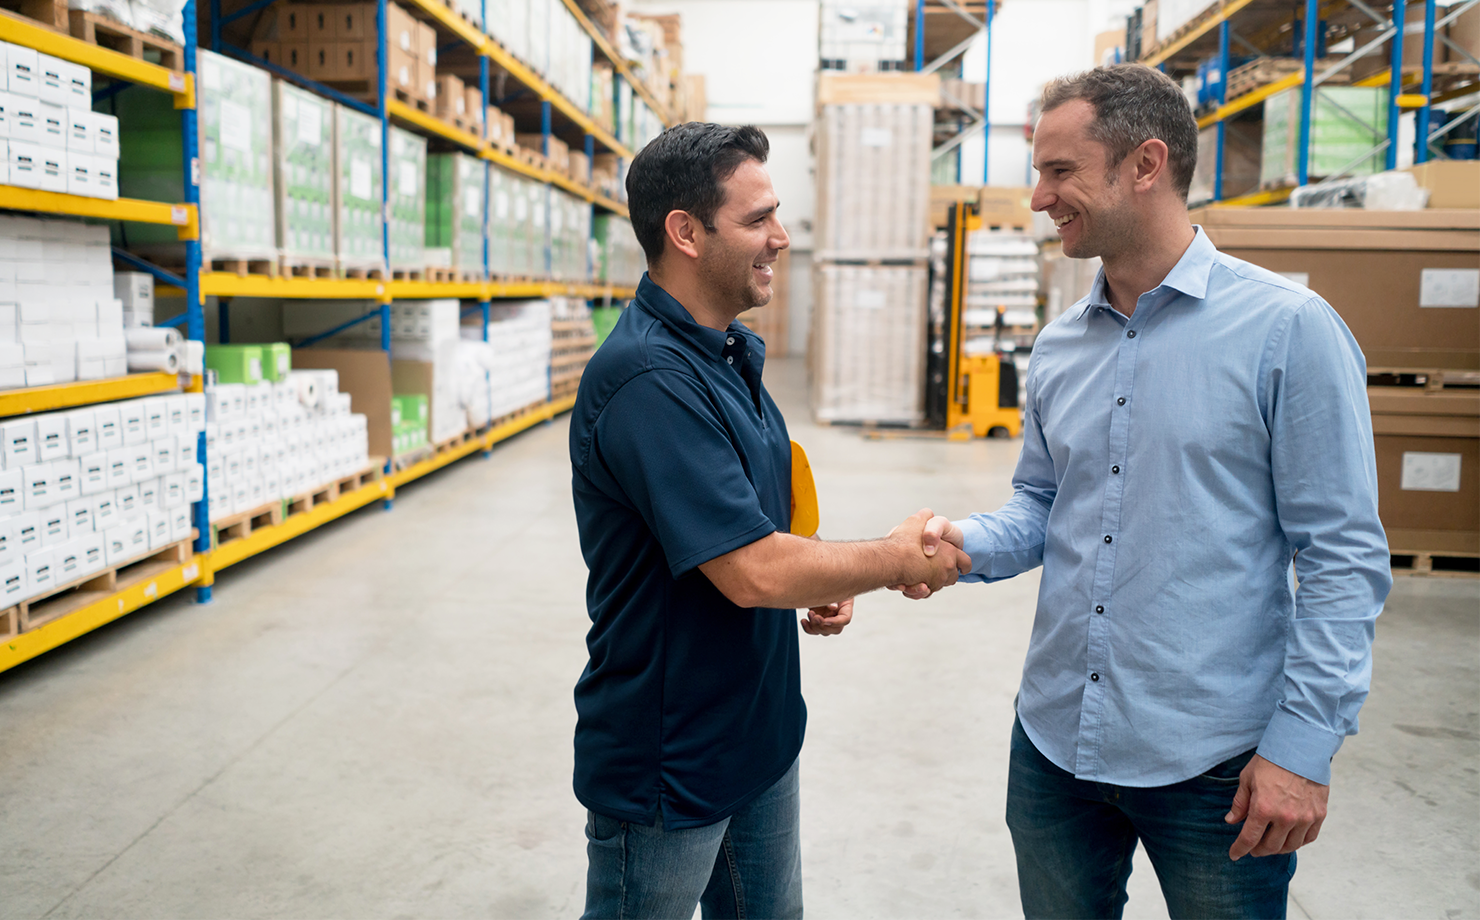 Two-business-men-handshaking-at-a-warehouse-856634734_7952x5304